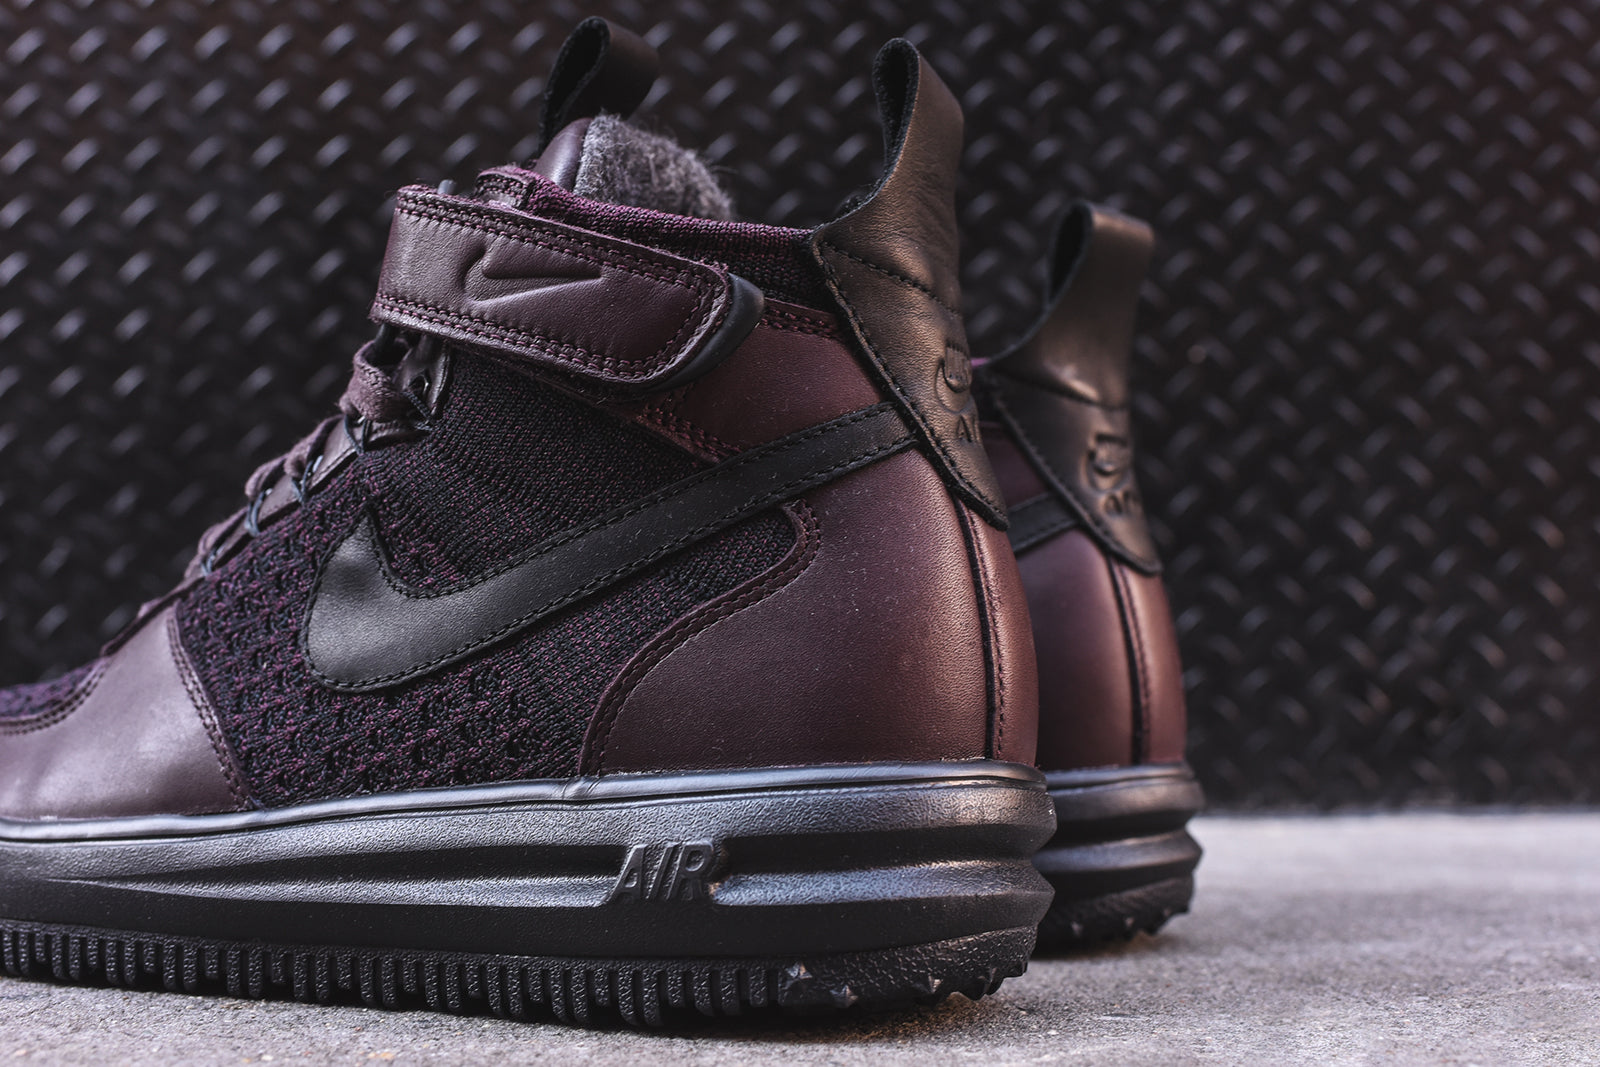 check out 9ad13 9f181 Nike Lunar Force 1 Flyknit Workboot - Burgundy – Kith